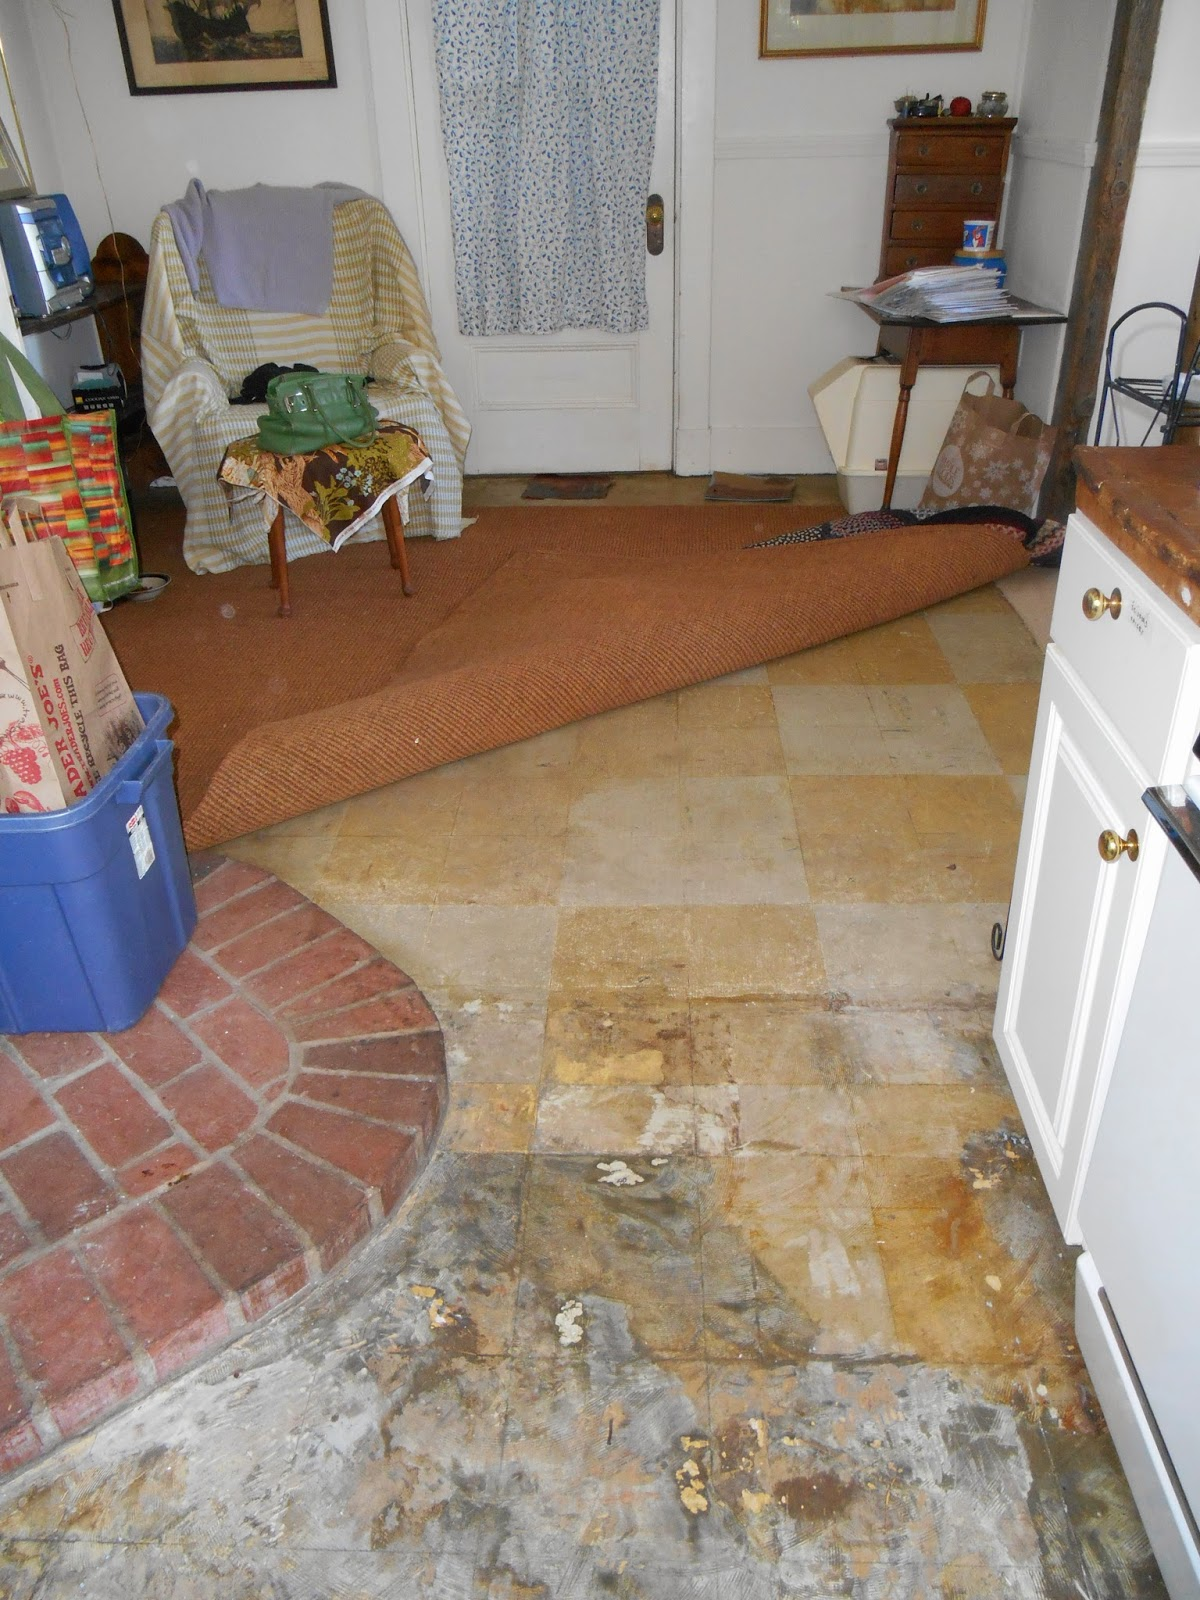 Living designs a paper bag floor over asbestos linoleum old linoleum under coir rug and also under newly removed blue linoleum showing black mastic dailygadgetfo Images